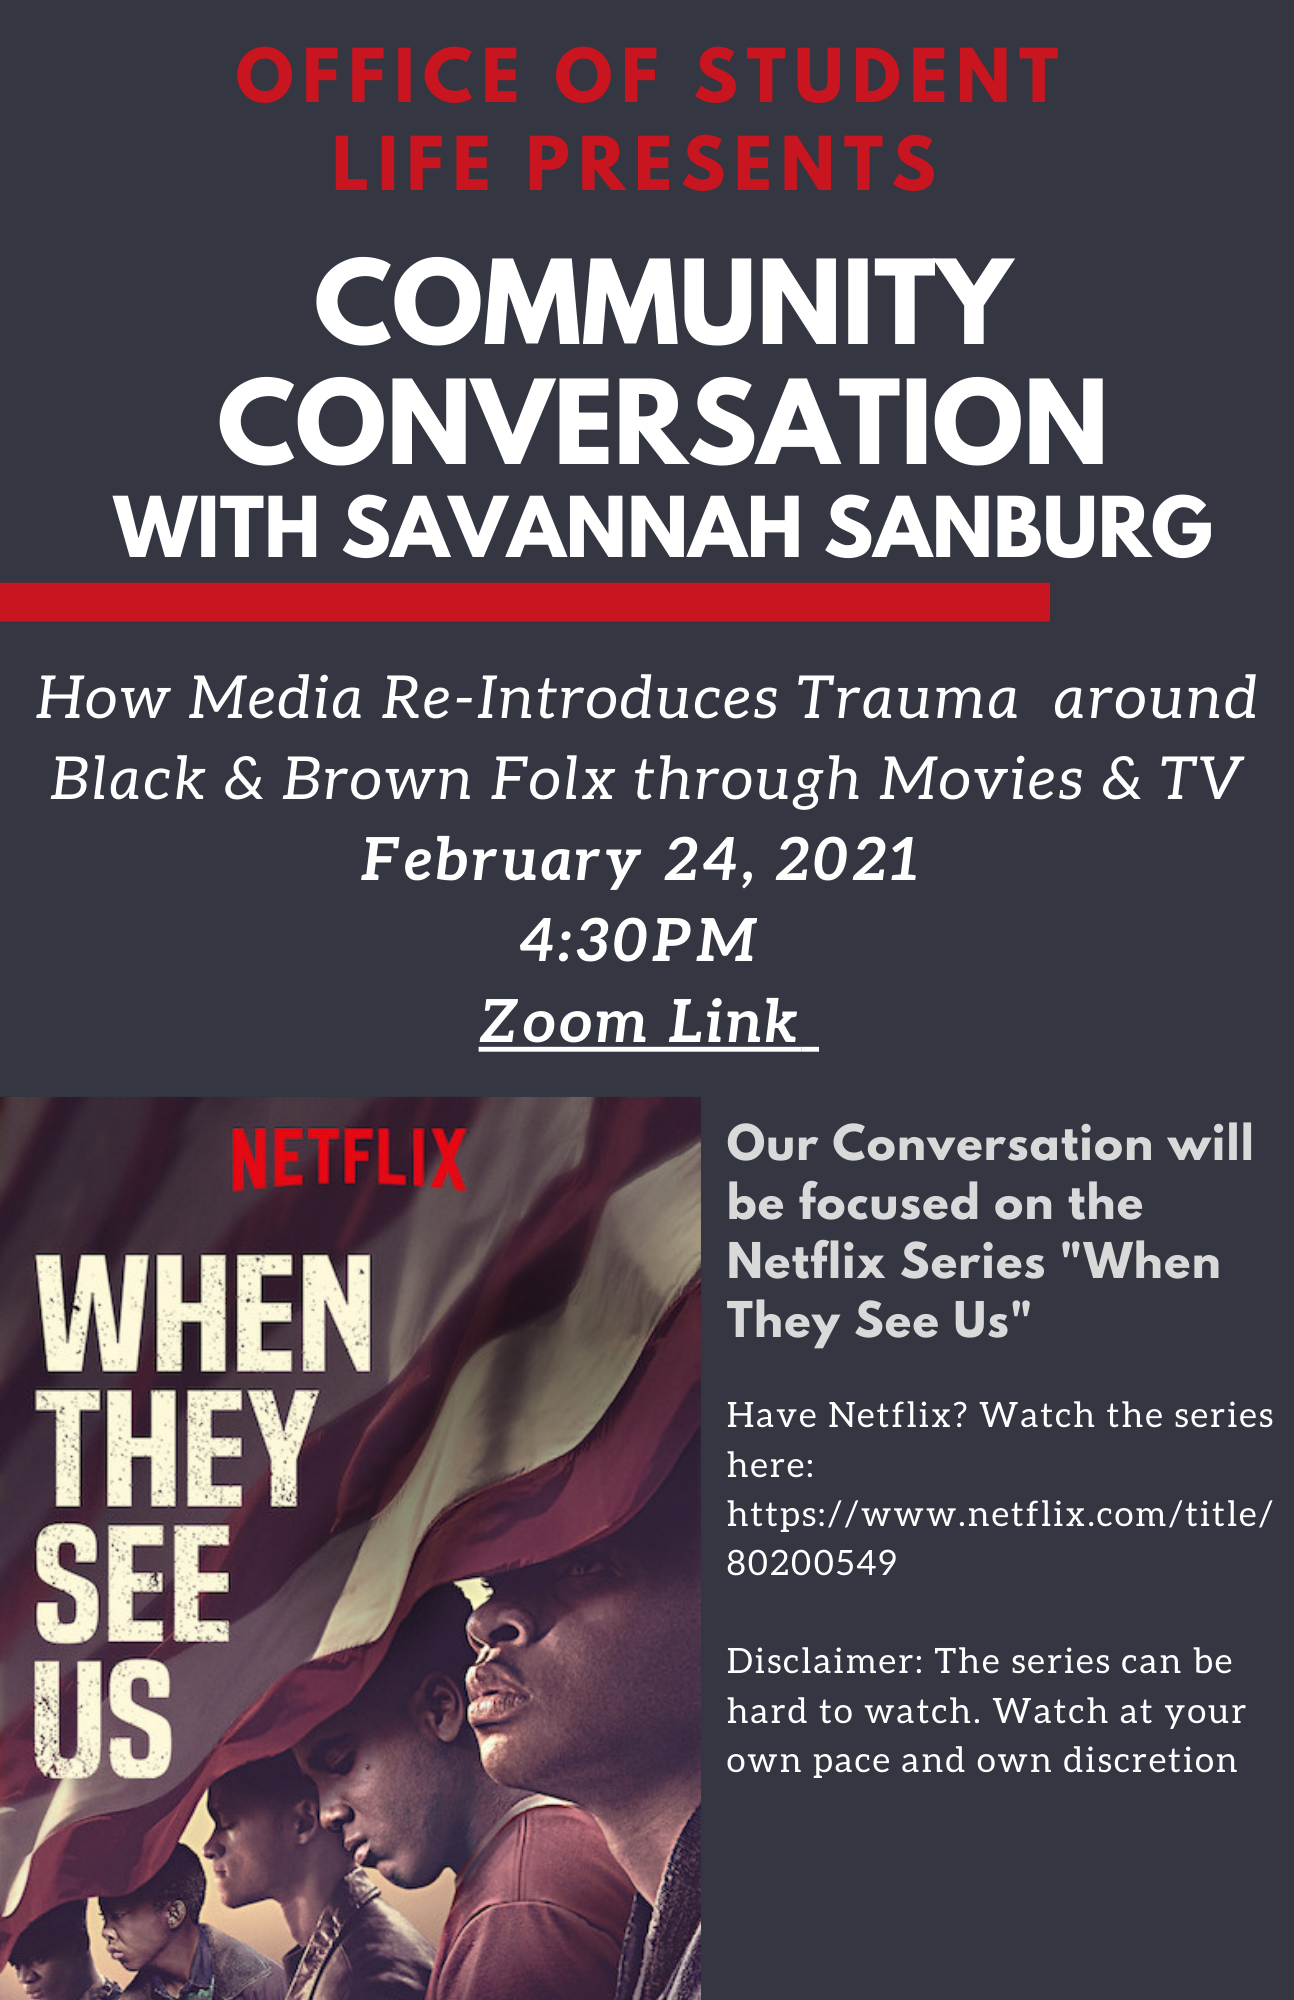 Flyer black and red, image of netflix show when they see us